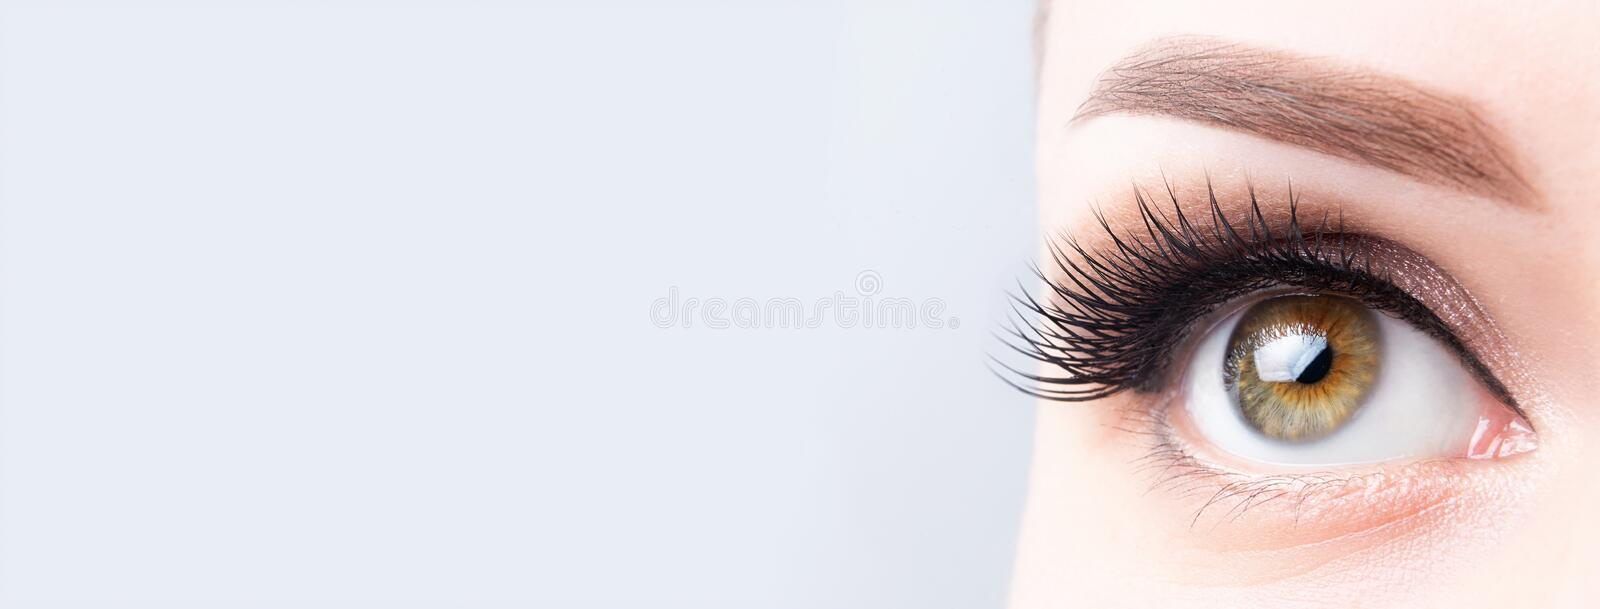 Eyelash lamination, extensions, microblading, tattoo, permanent, cosmetology, ophthalmology banner or background. Eye with long royalty free stock photos